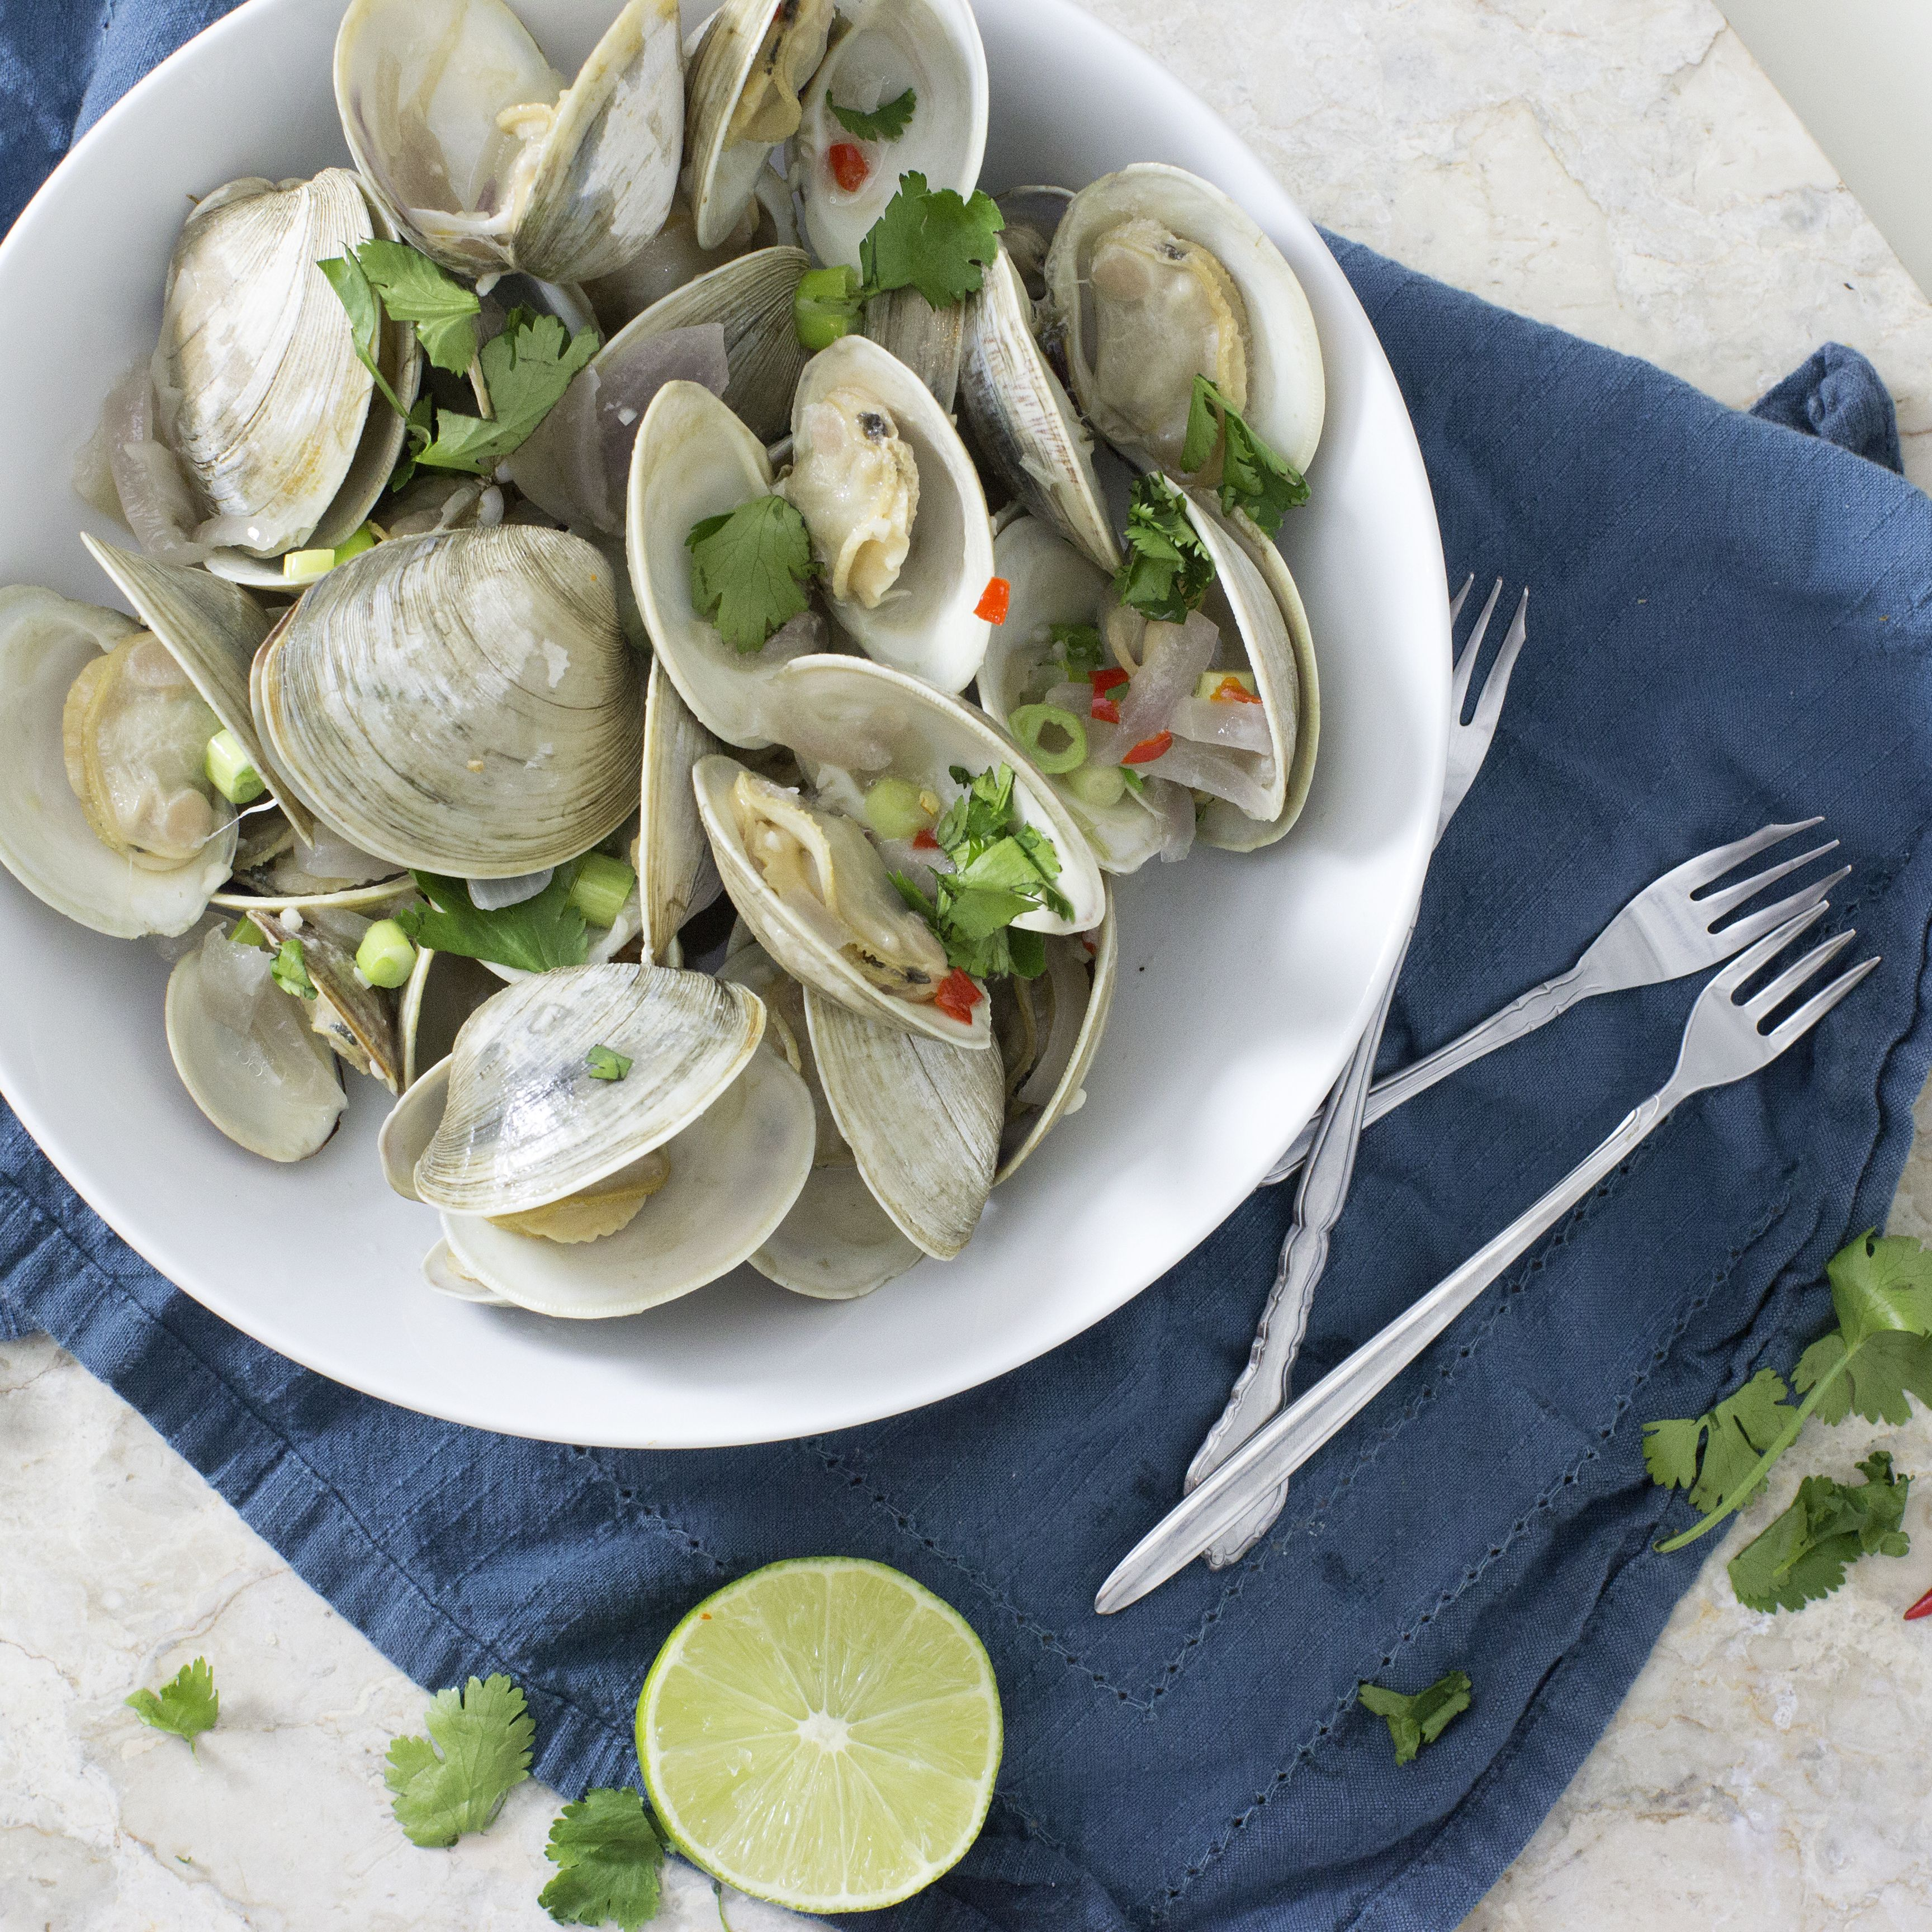 Coconut Thai Steamed Clams Just Me And The Clams Steamed Clams Clams Corn Free